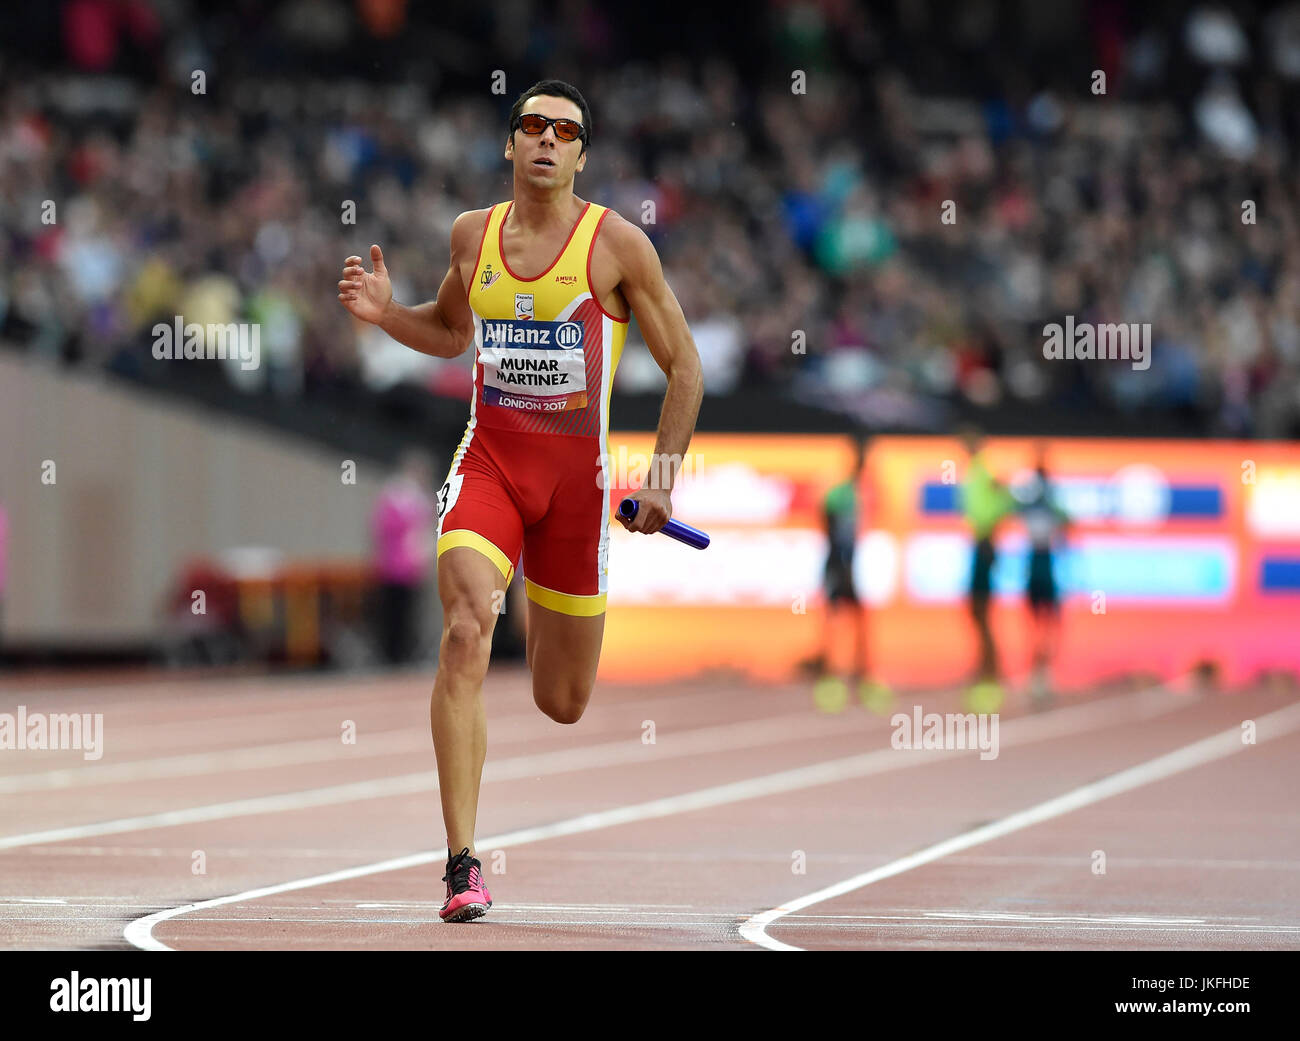 LONDON ENGLAND - July 23, 2017: Joan Munar Martinez (EPS) in Men's 4x100m Relay T11-13 Final during World Para - Stock Image